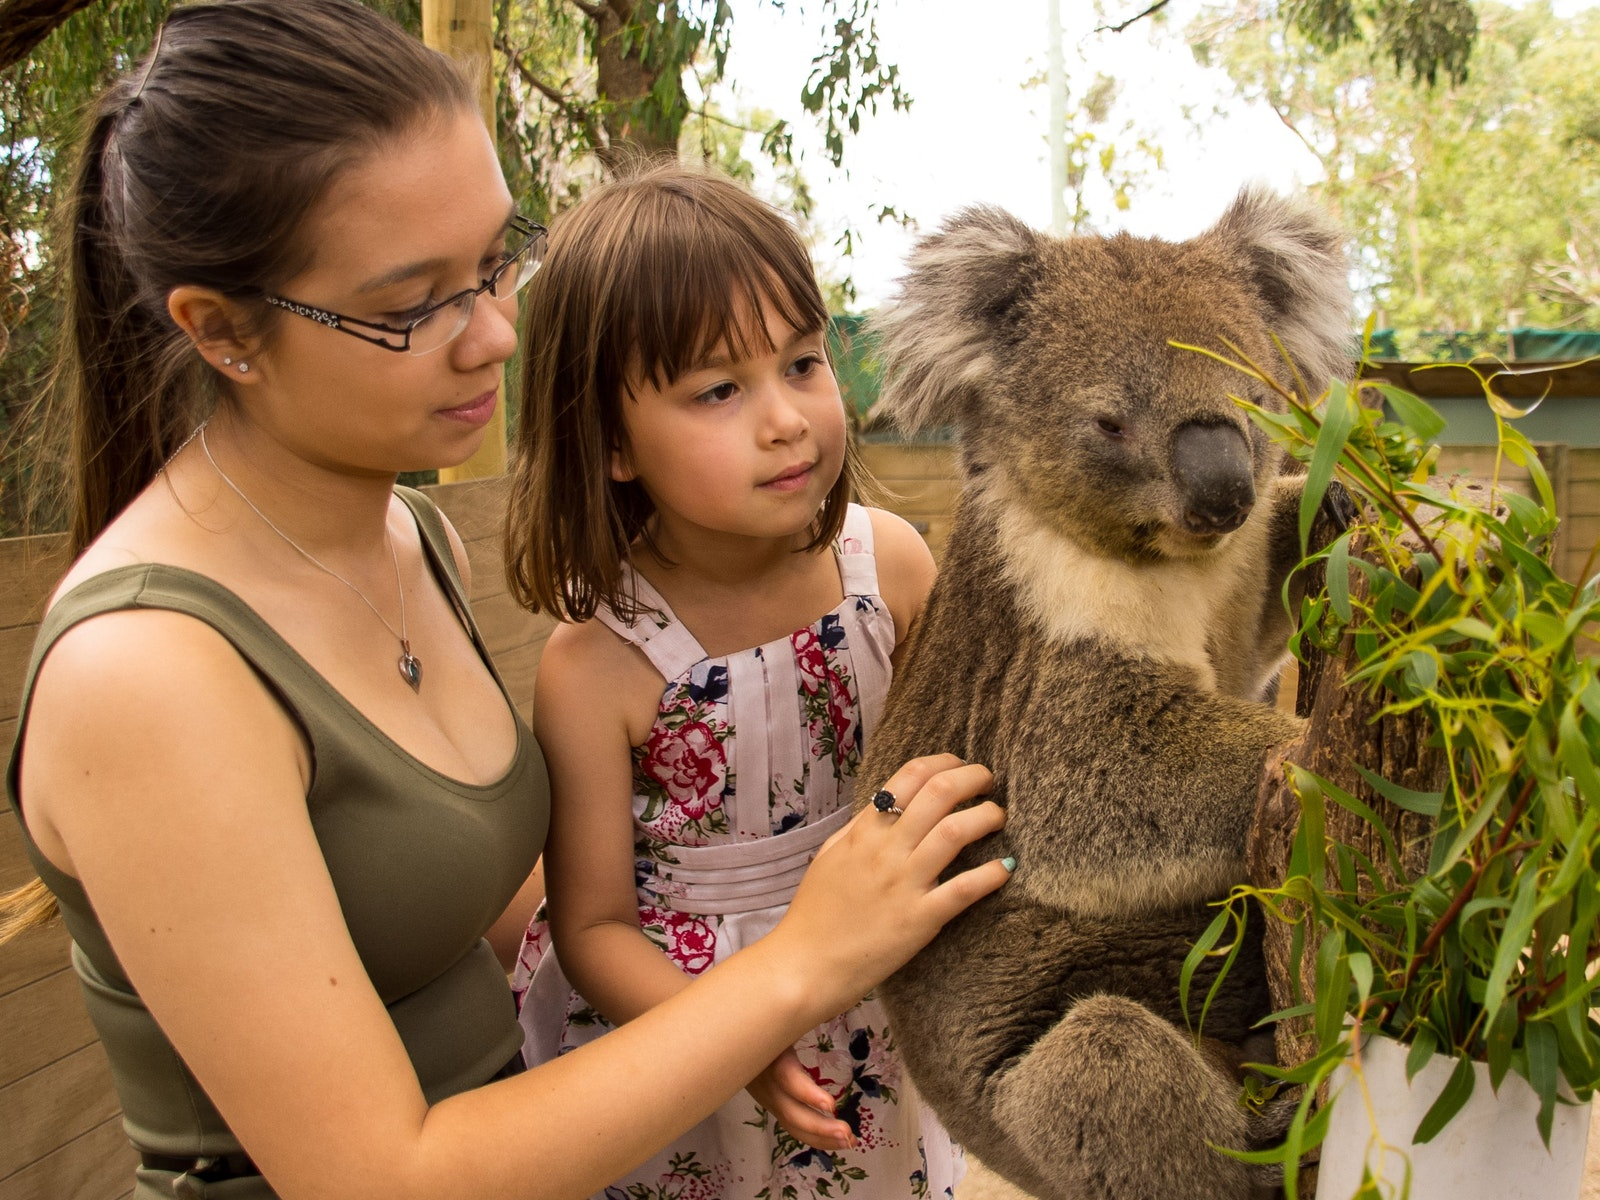 Opportunity to touch a Koala at Moonlit Sanctuary